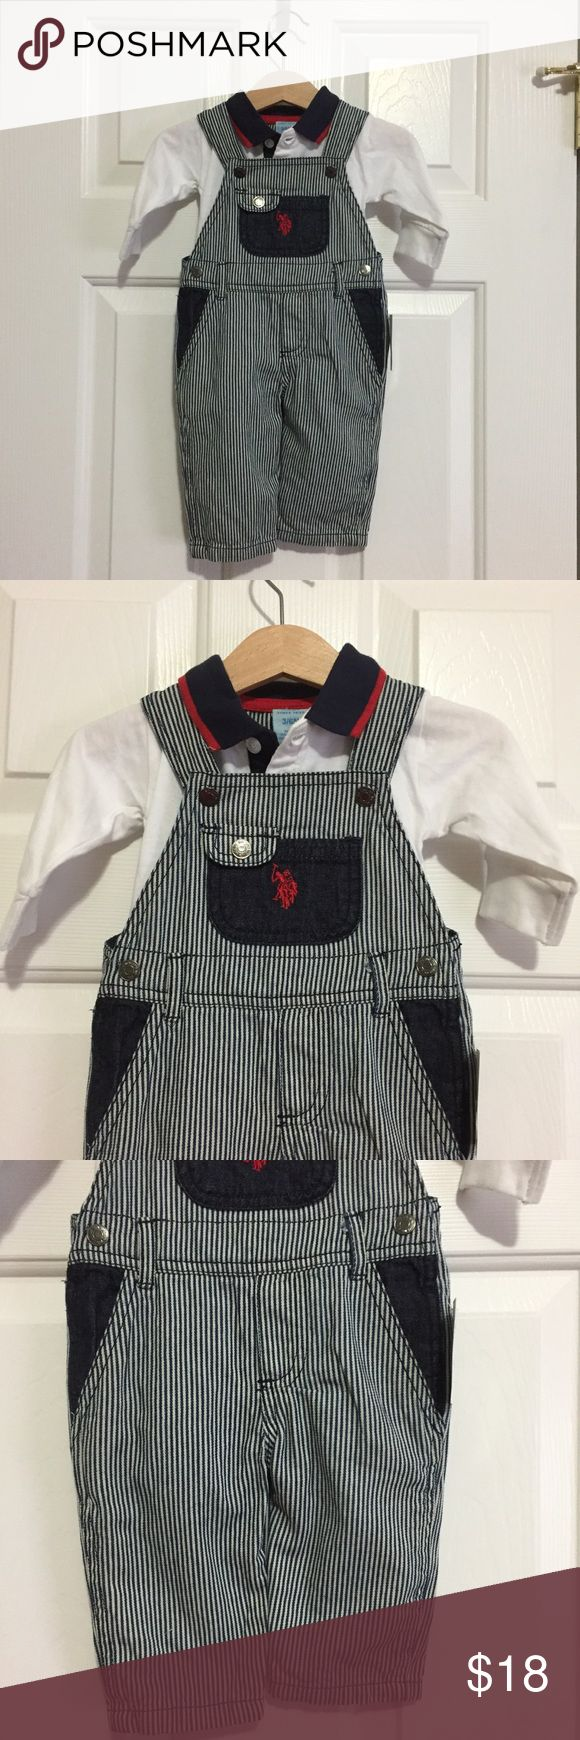 US Polo collared onesie and overalls Matching 2-piece set by US Polo Association. Collared onesie in white, navy blue, and red with matching navy blue and white striped overalls. Overalls have side pockets and rear pockets for anything your little guy wants to hold onto. Snaps at waist and at shoulders (2 snap sizes for shoulder straps). This was NWT and I cut the tags off the onesie before realizing it won't fit my little guy :(. Never worn, I have the tags for the onesie and tags are still…